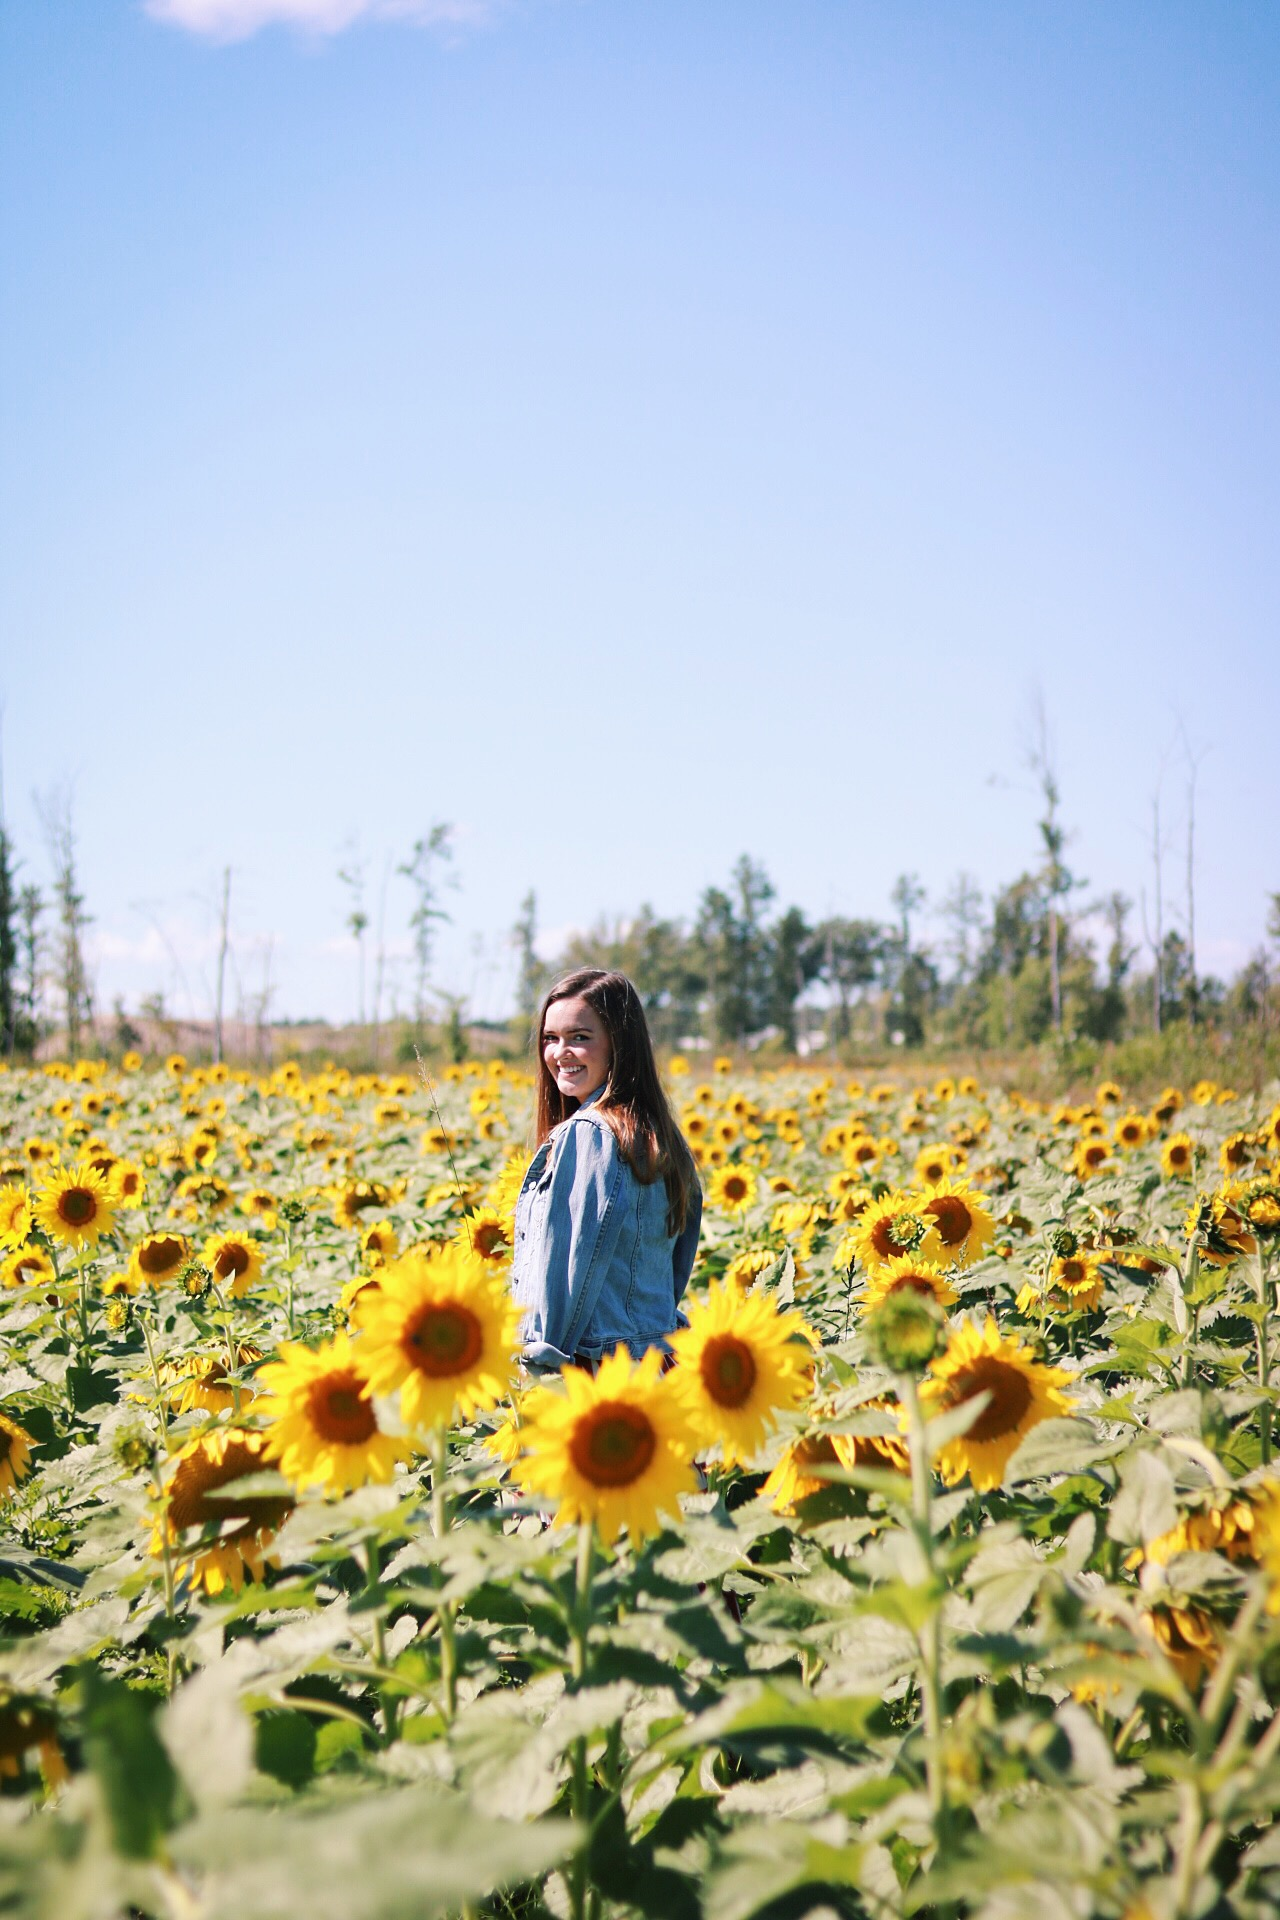 Sundays at Cleveland's Sunflower Fields (Prayers from Maria)